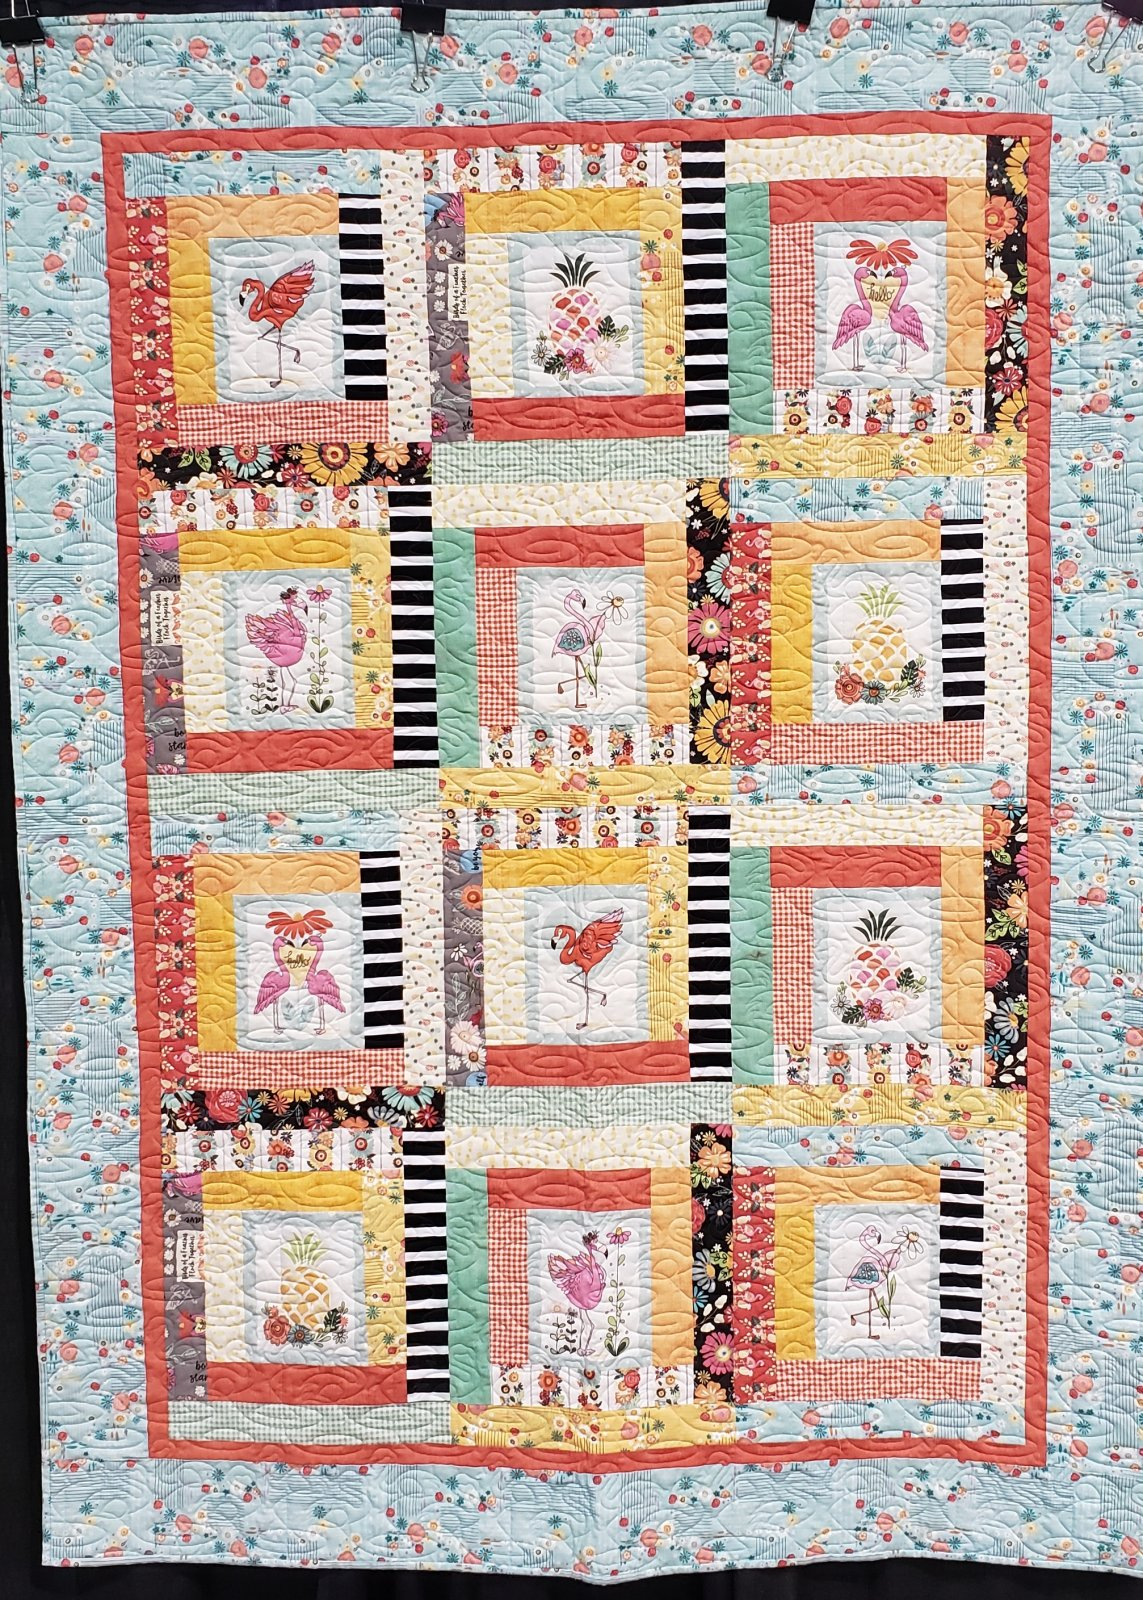 2019 Quilt Show Quilts Group 2 Of 2 Public Pictures Only